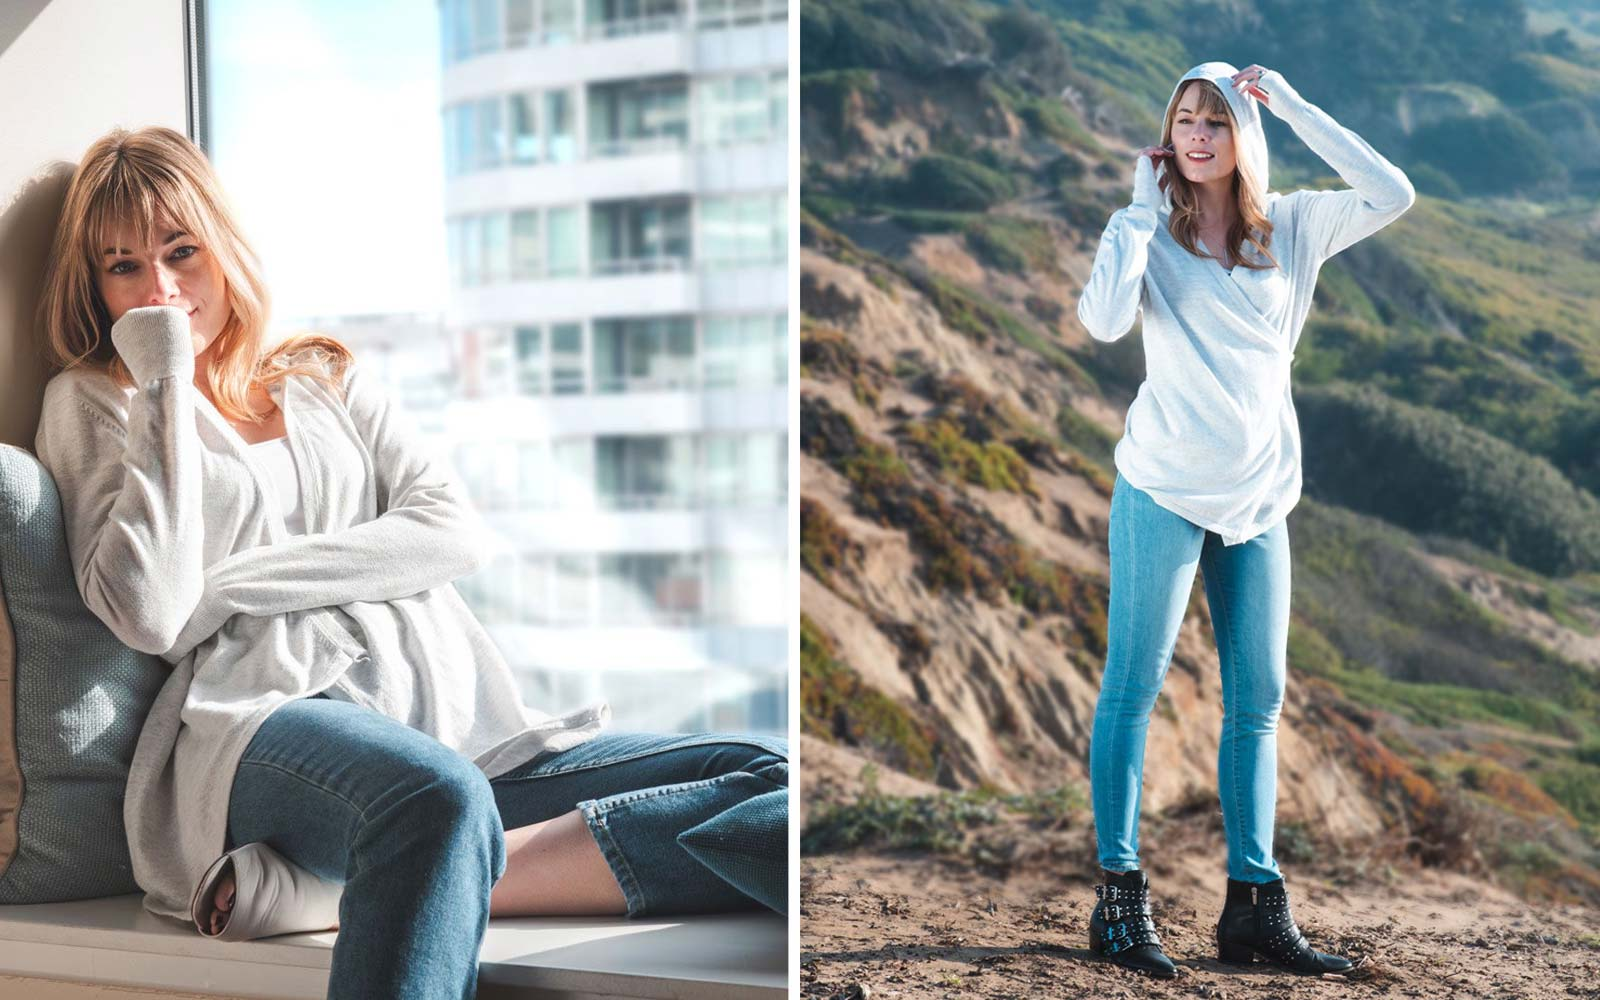 This Temperature-regulating Sweater Surpassed Its Crowdfunding Goal by 1,100%